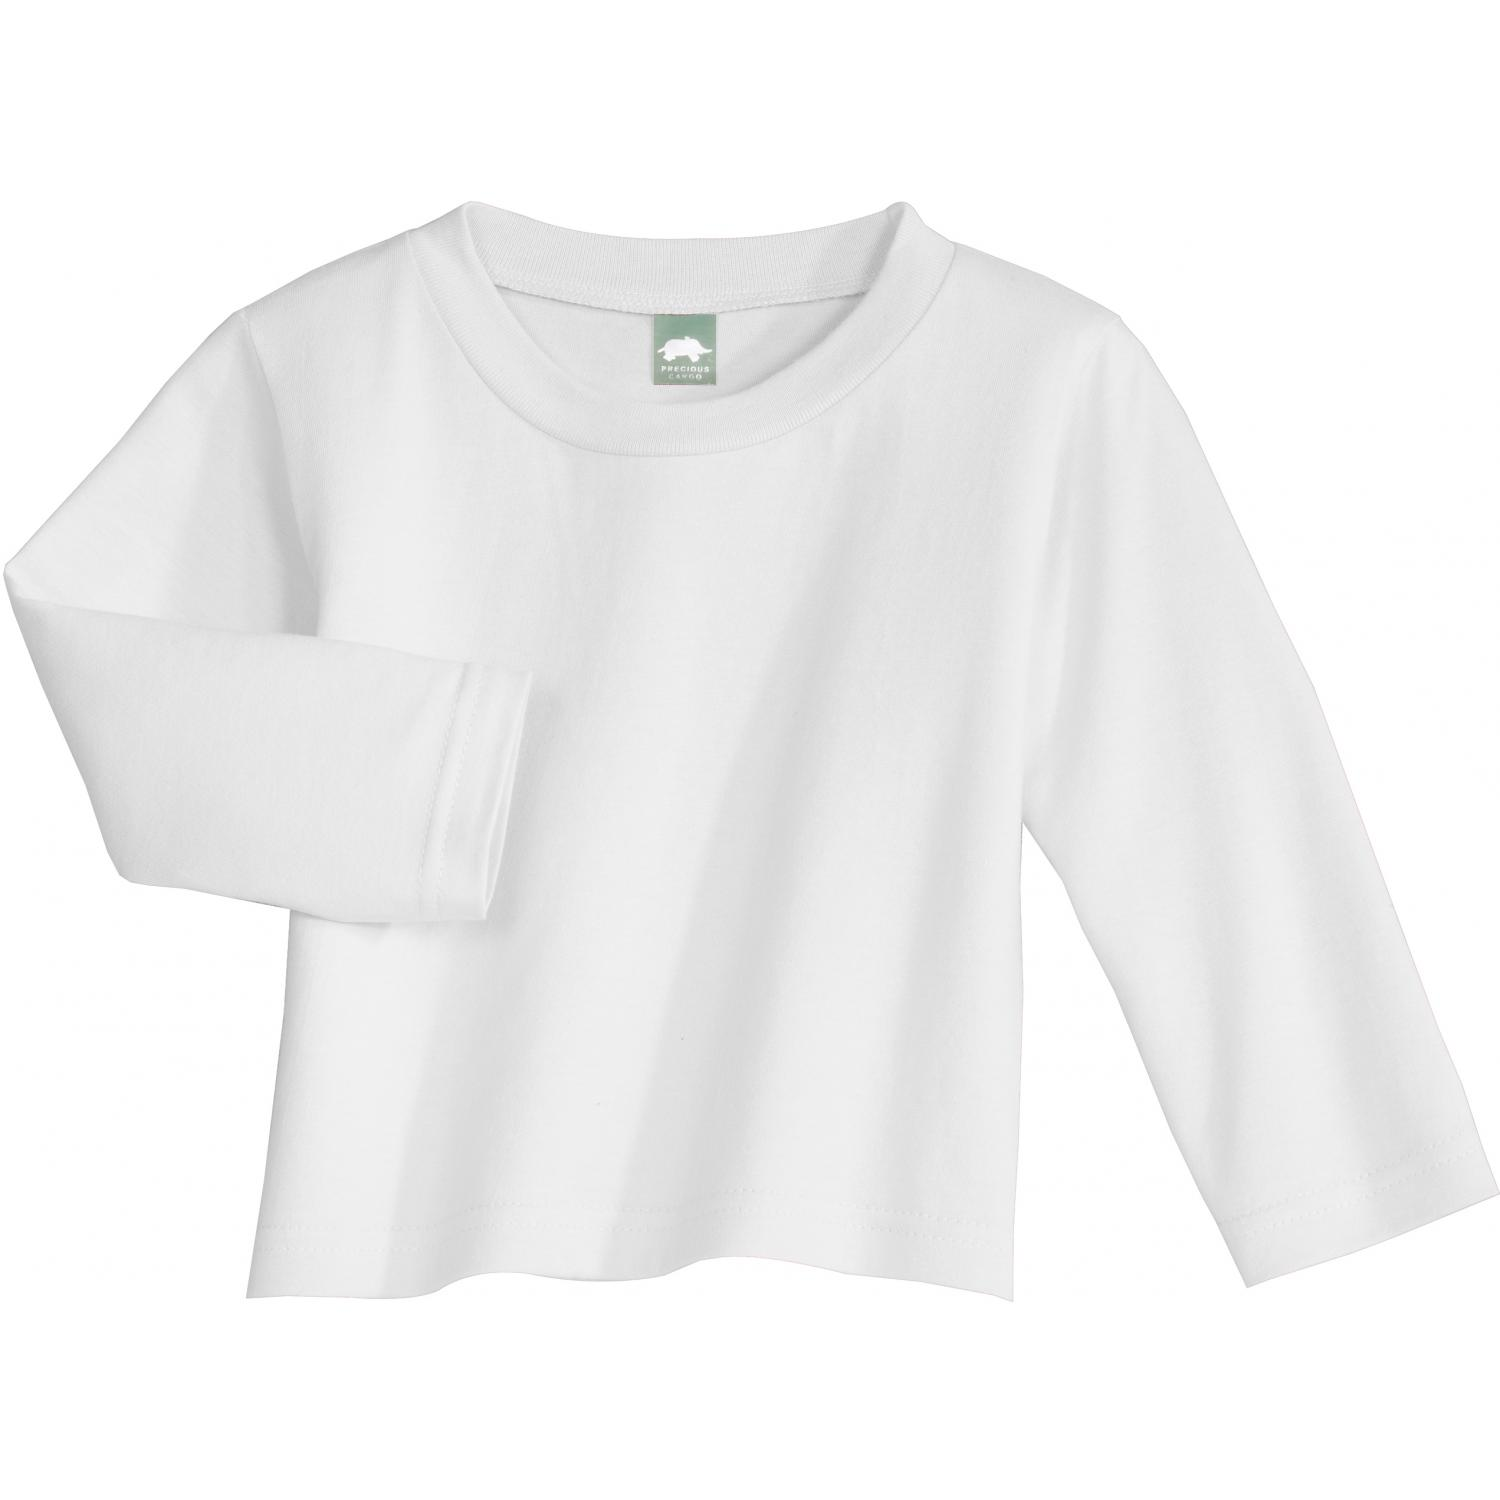 Precious Cargo Toddler Long Sleeve T-shirt 3t - White